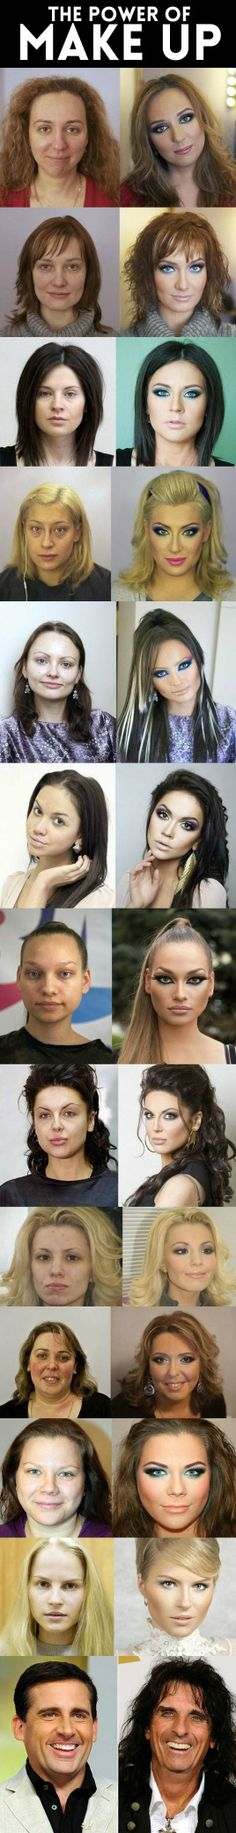 Funny GIF power of makeup